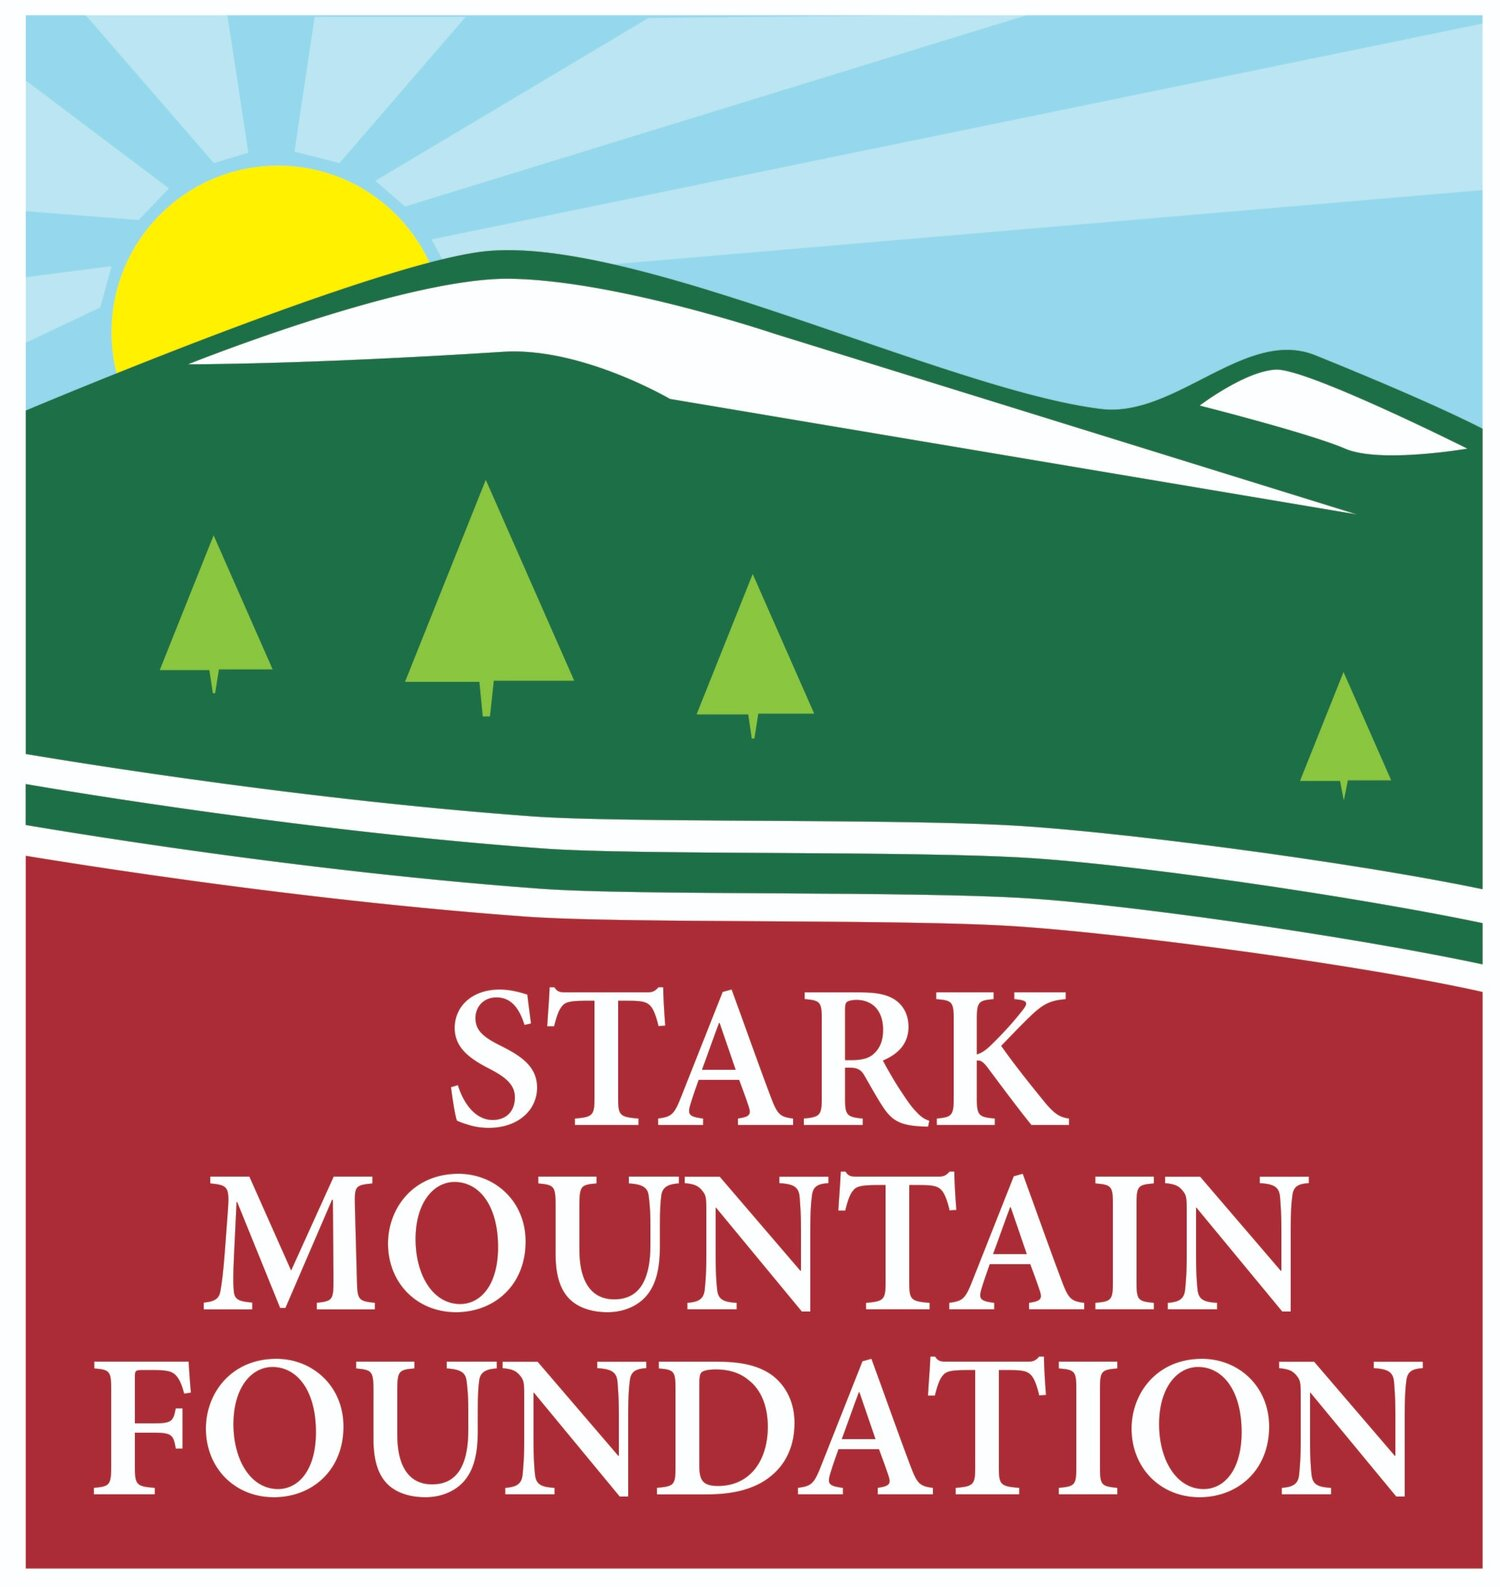 Stark Mountain Foundation